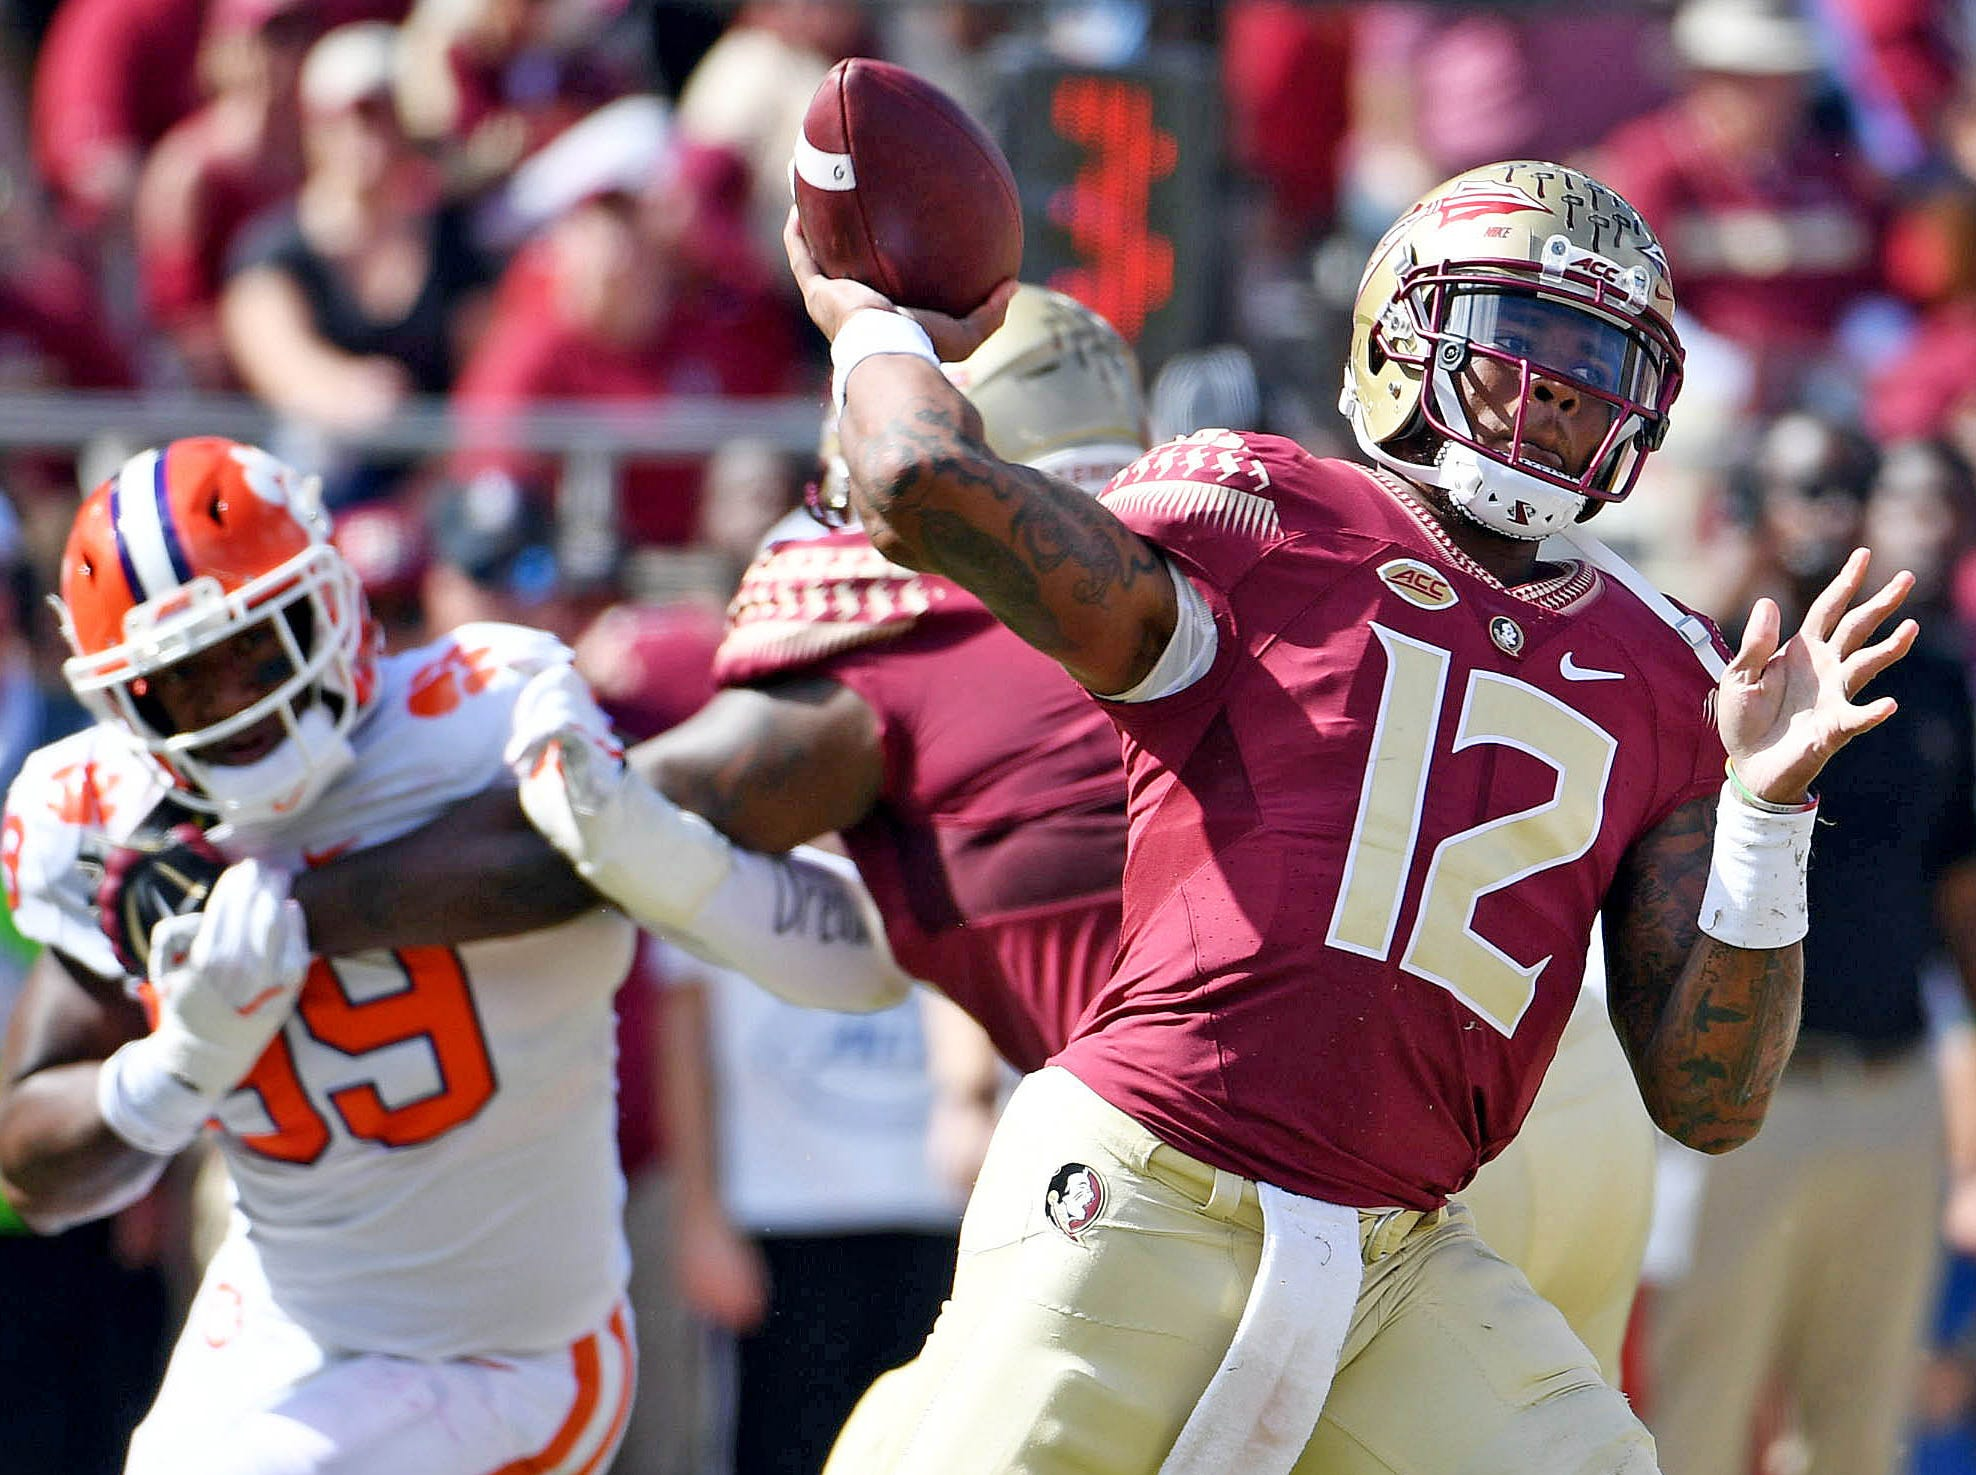 Oct 27, 2018; Tallahassee, FL, USA; Clemson Tigers pressure Florida State Seminoles quarterback Deondre Francois (12) during the first half at Doak Campbell Stadium. Mandatory Credit: Melina Myers-USA TODAY Sports